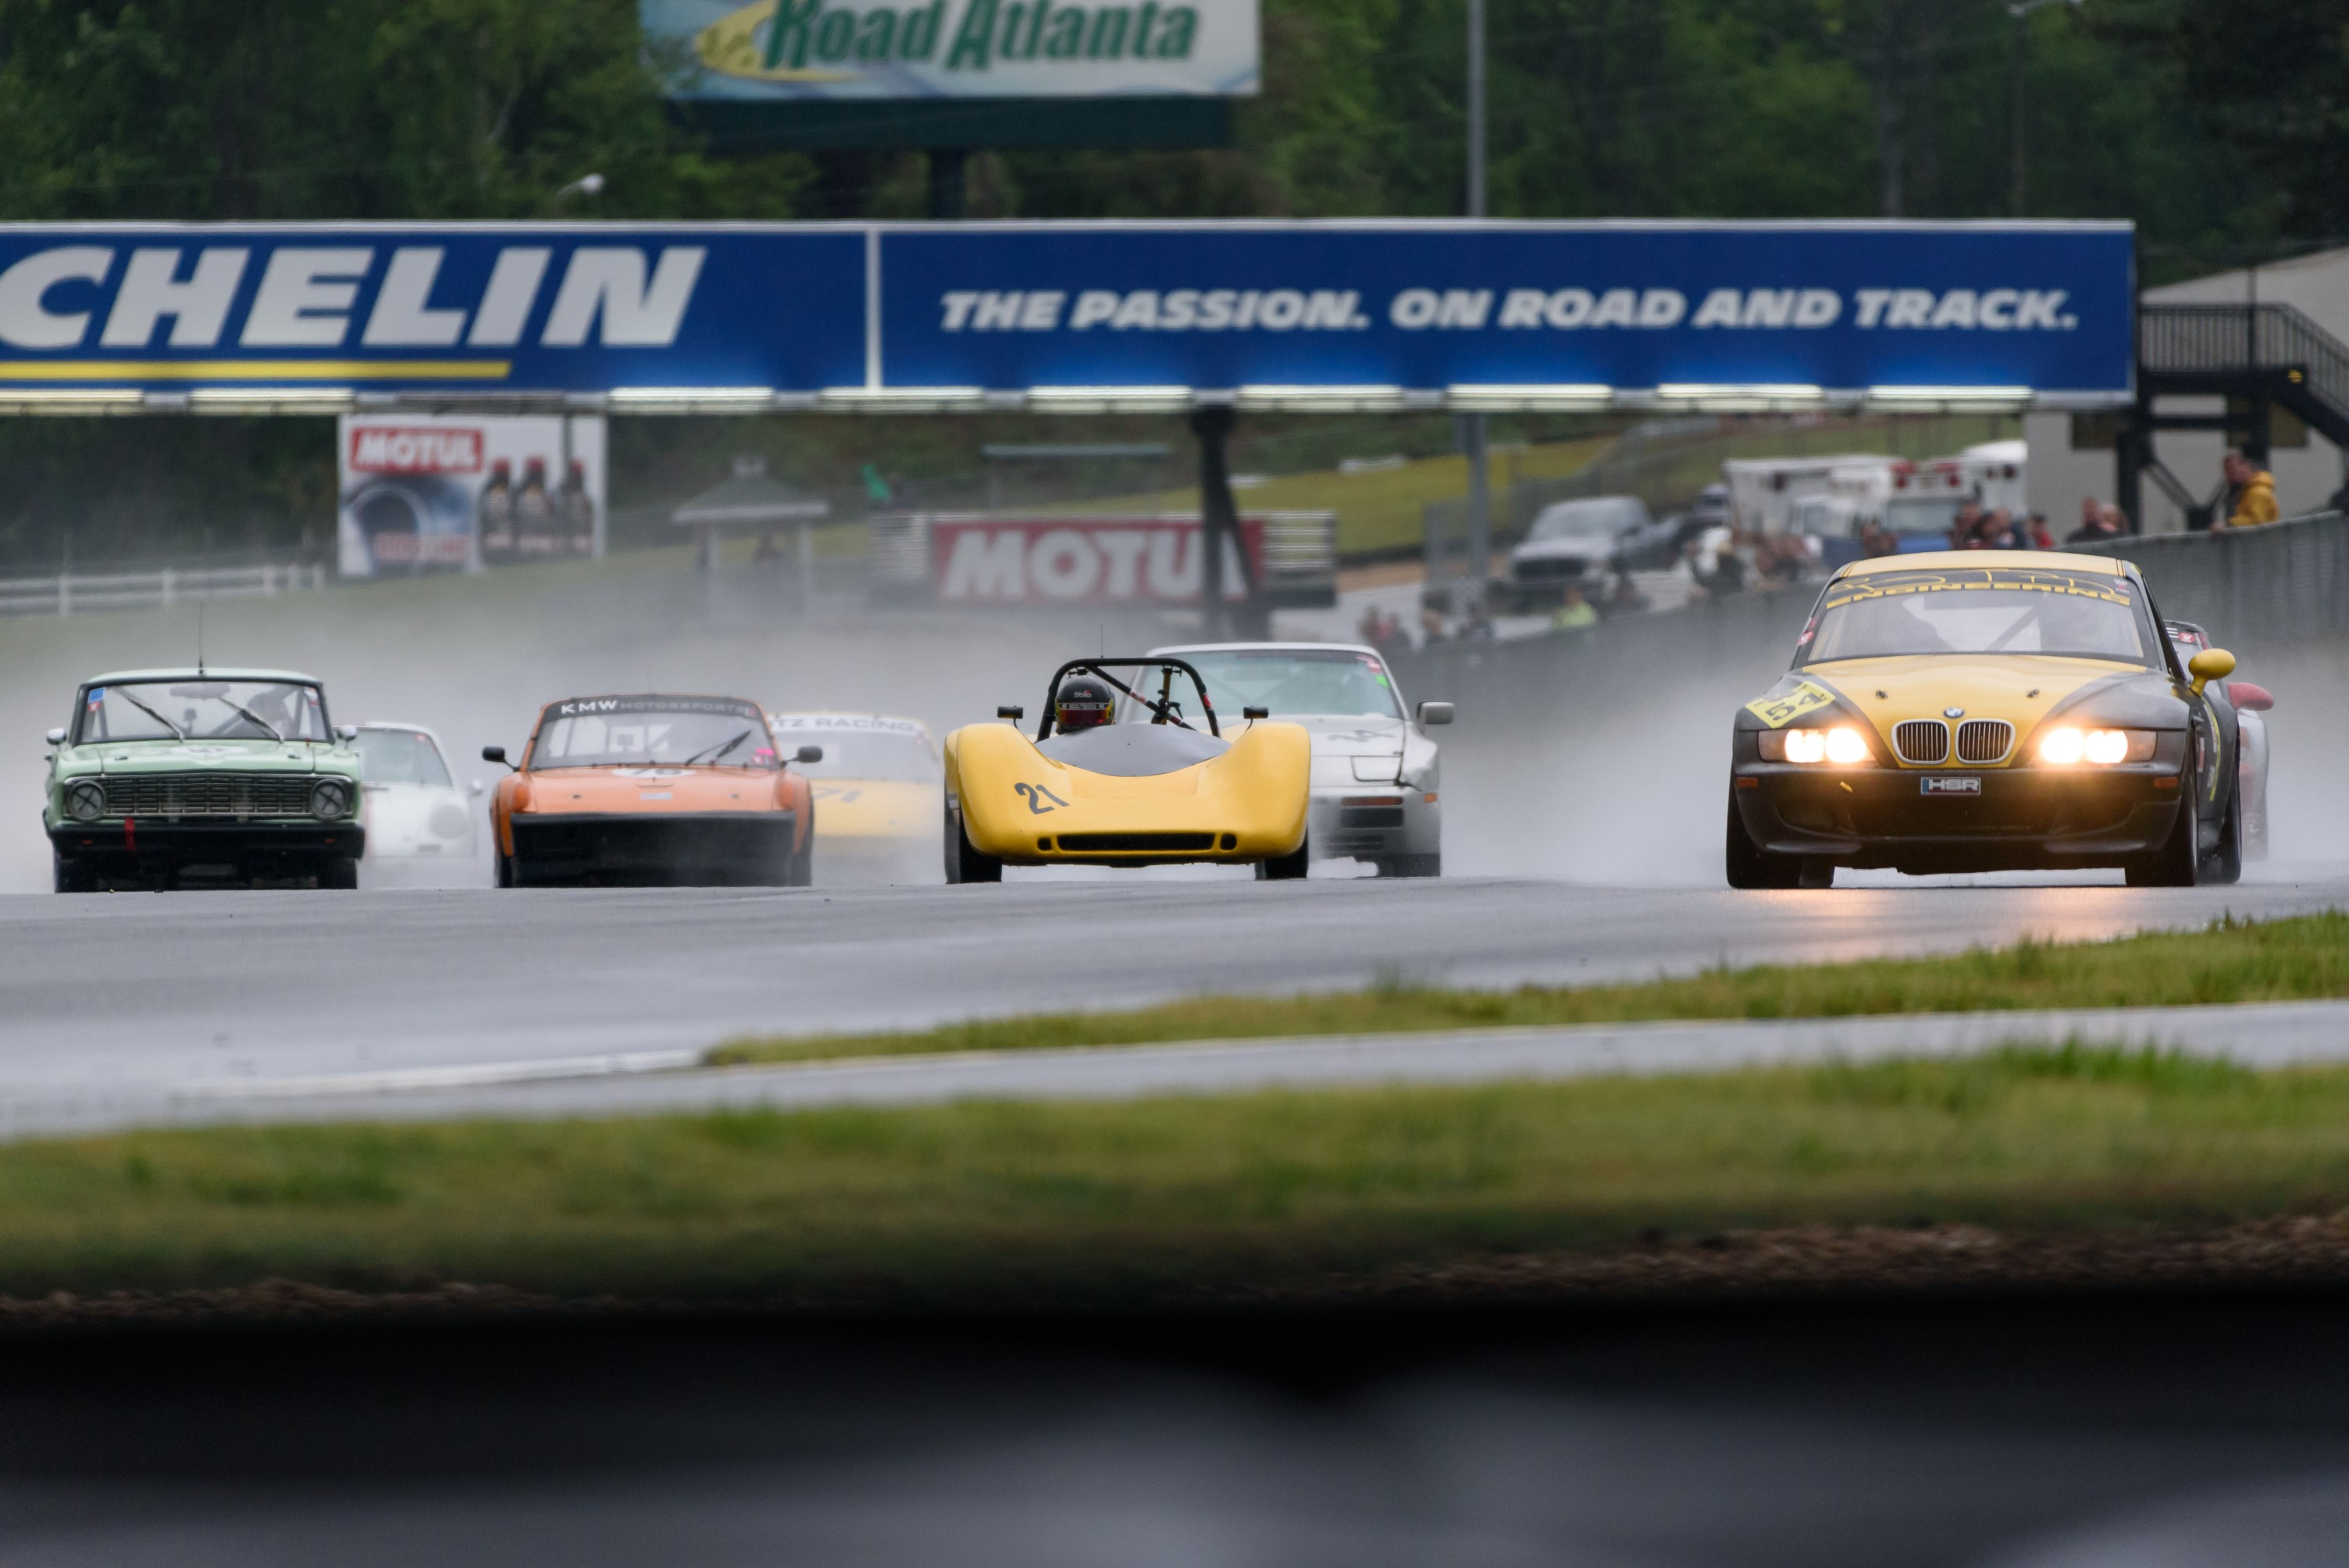 The Mitty celebrates 40 years of vintage racing - ClassicCars.com ...